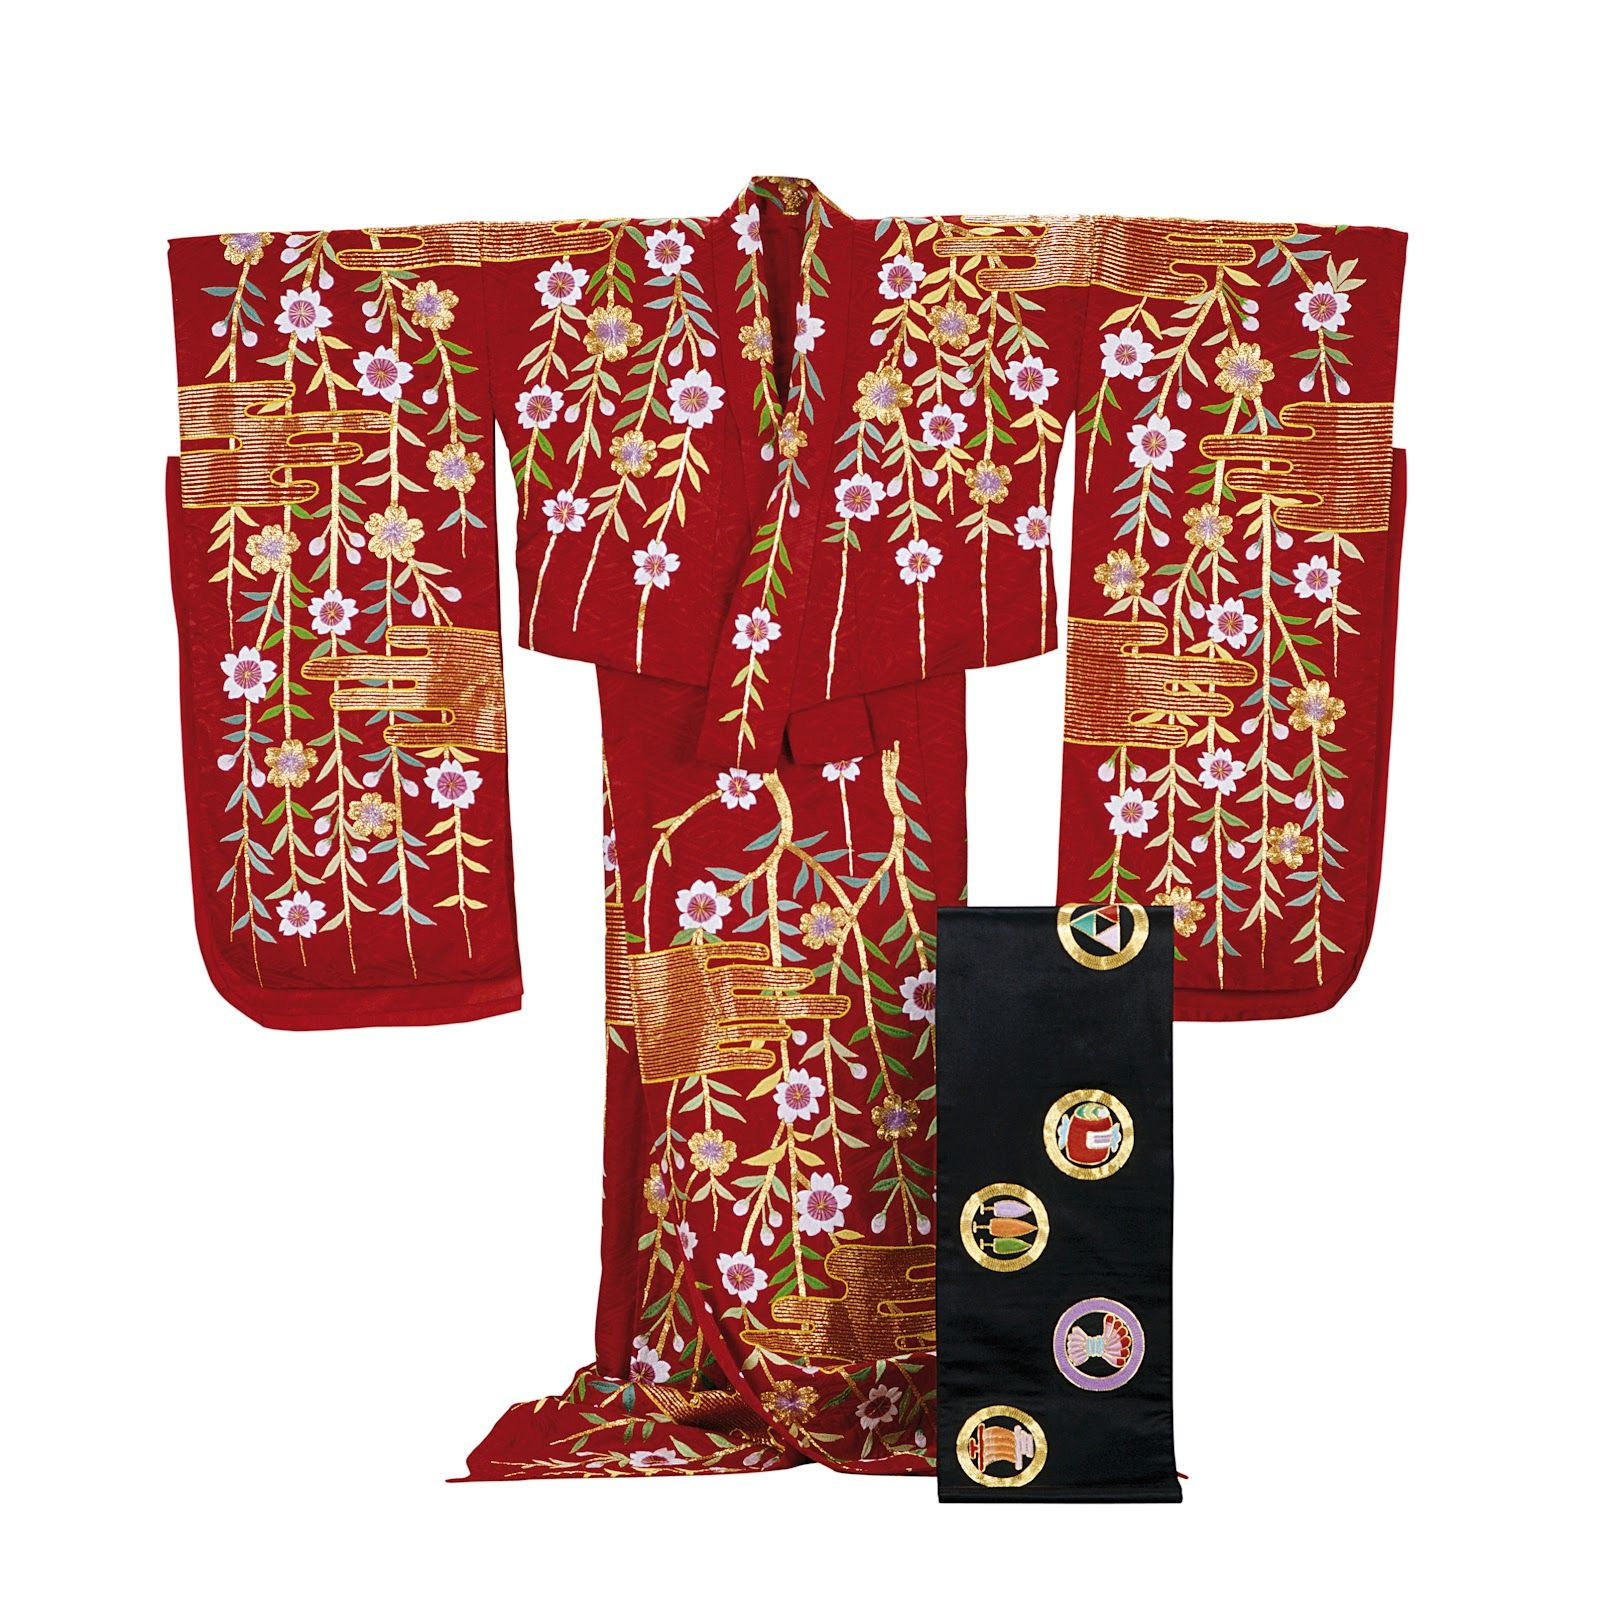 The Art of Kabuki, Japanese Theatre Costumes | Floral motif ...